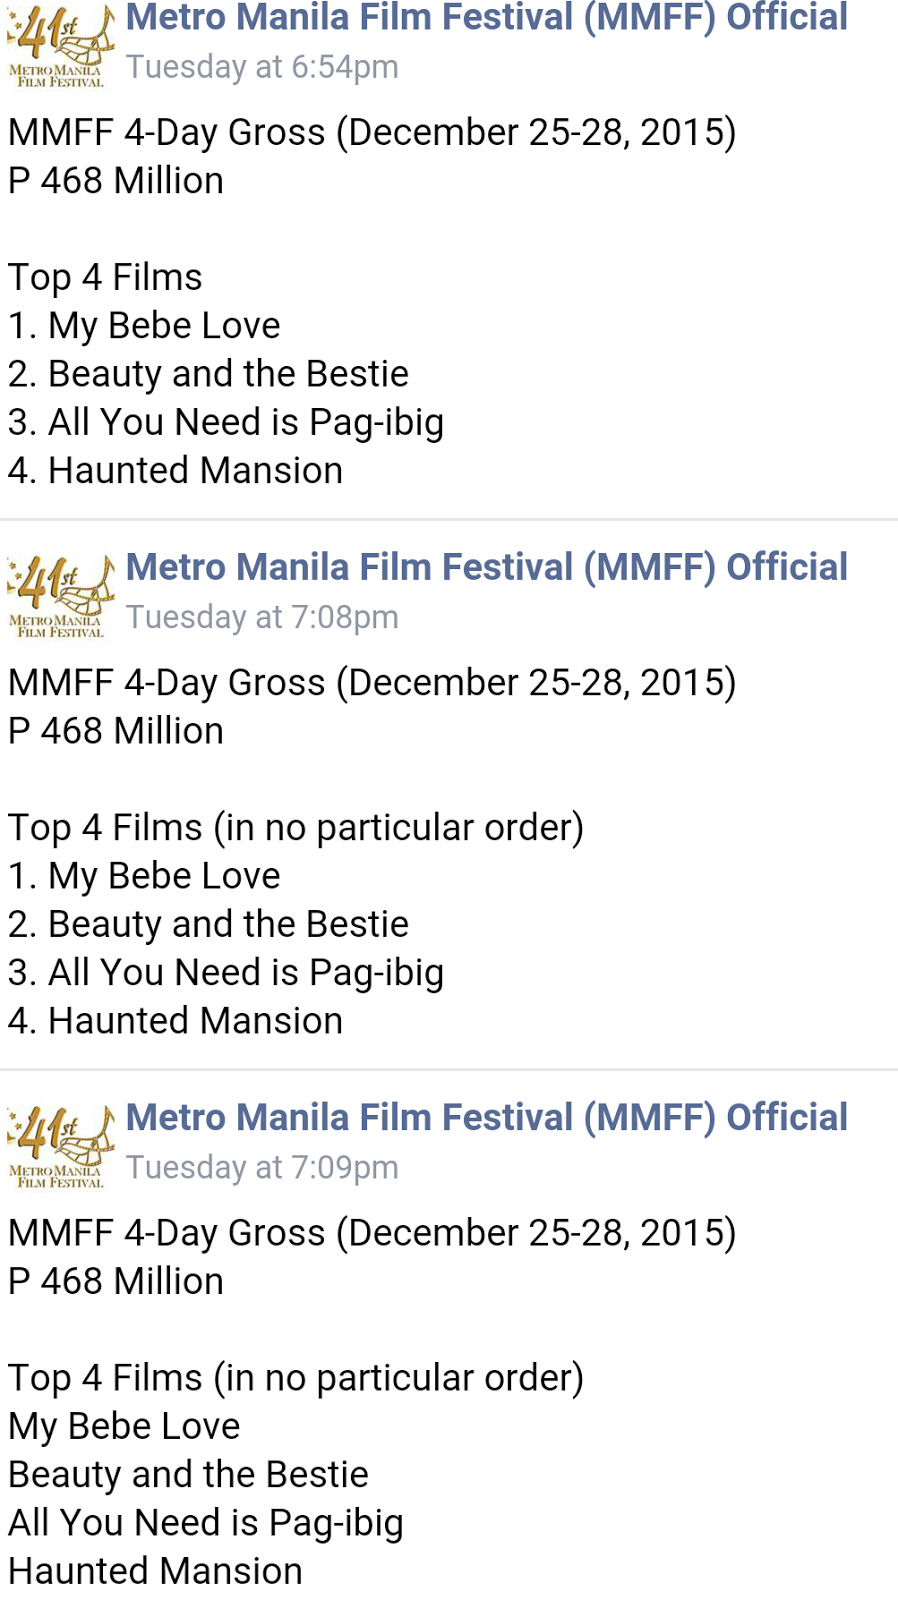 MMFF 2015 Box Office Ranking